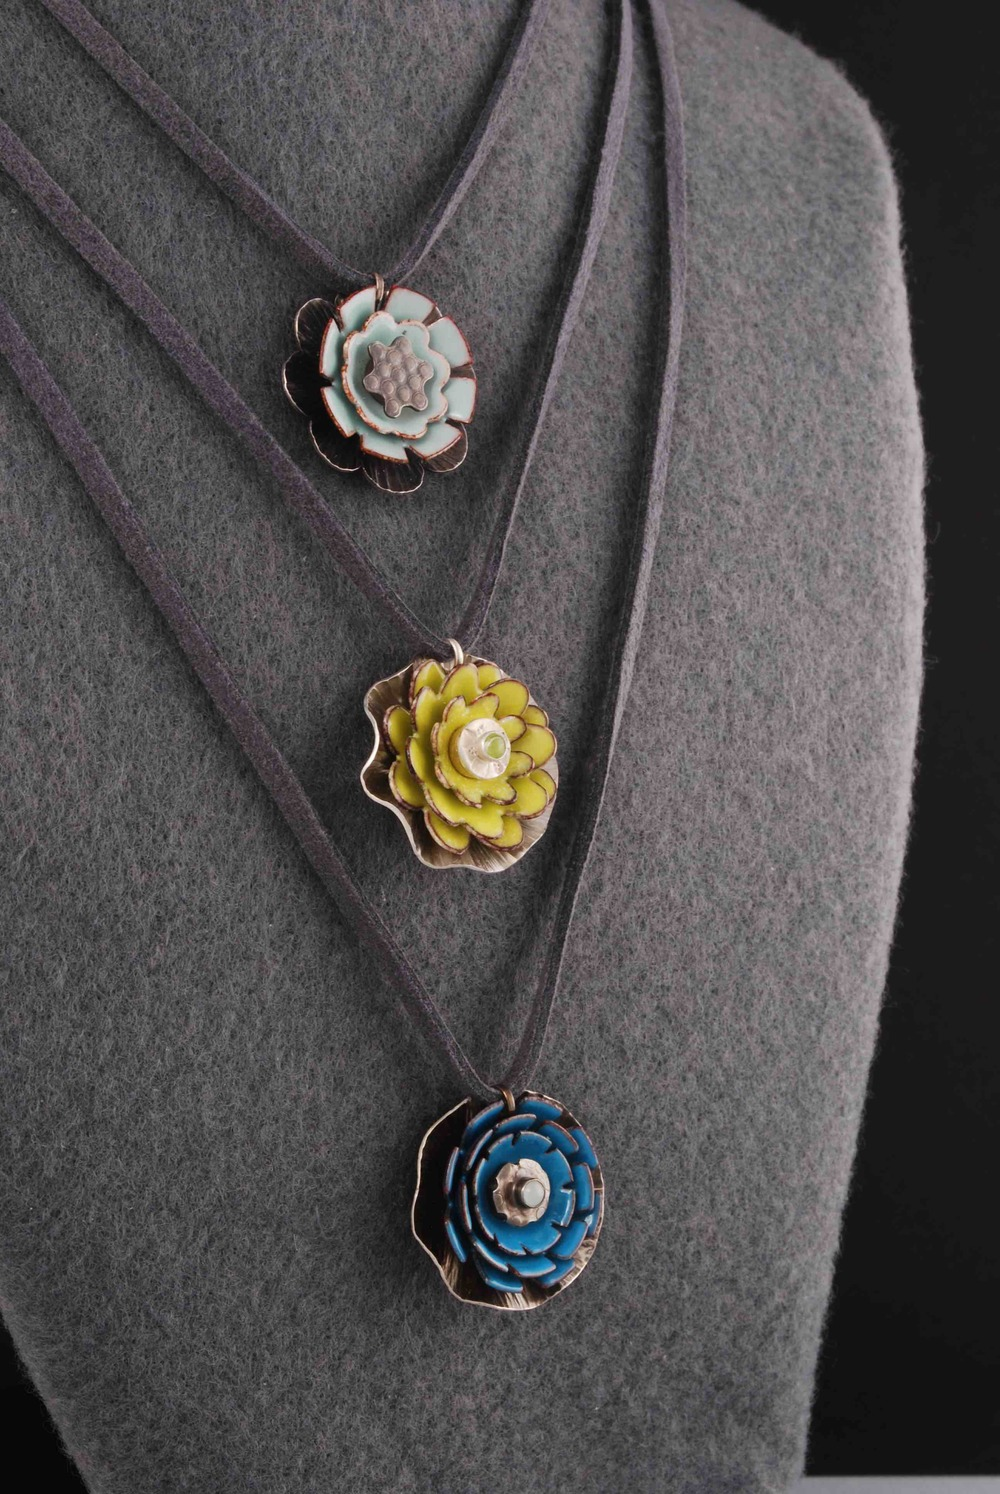 bloom pendants